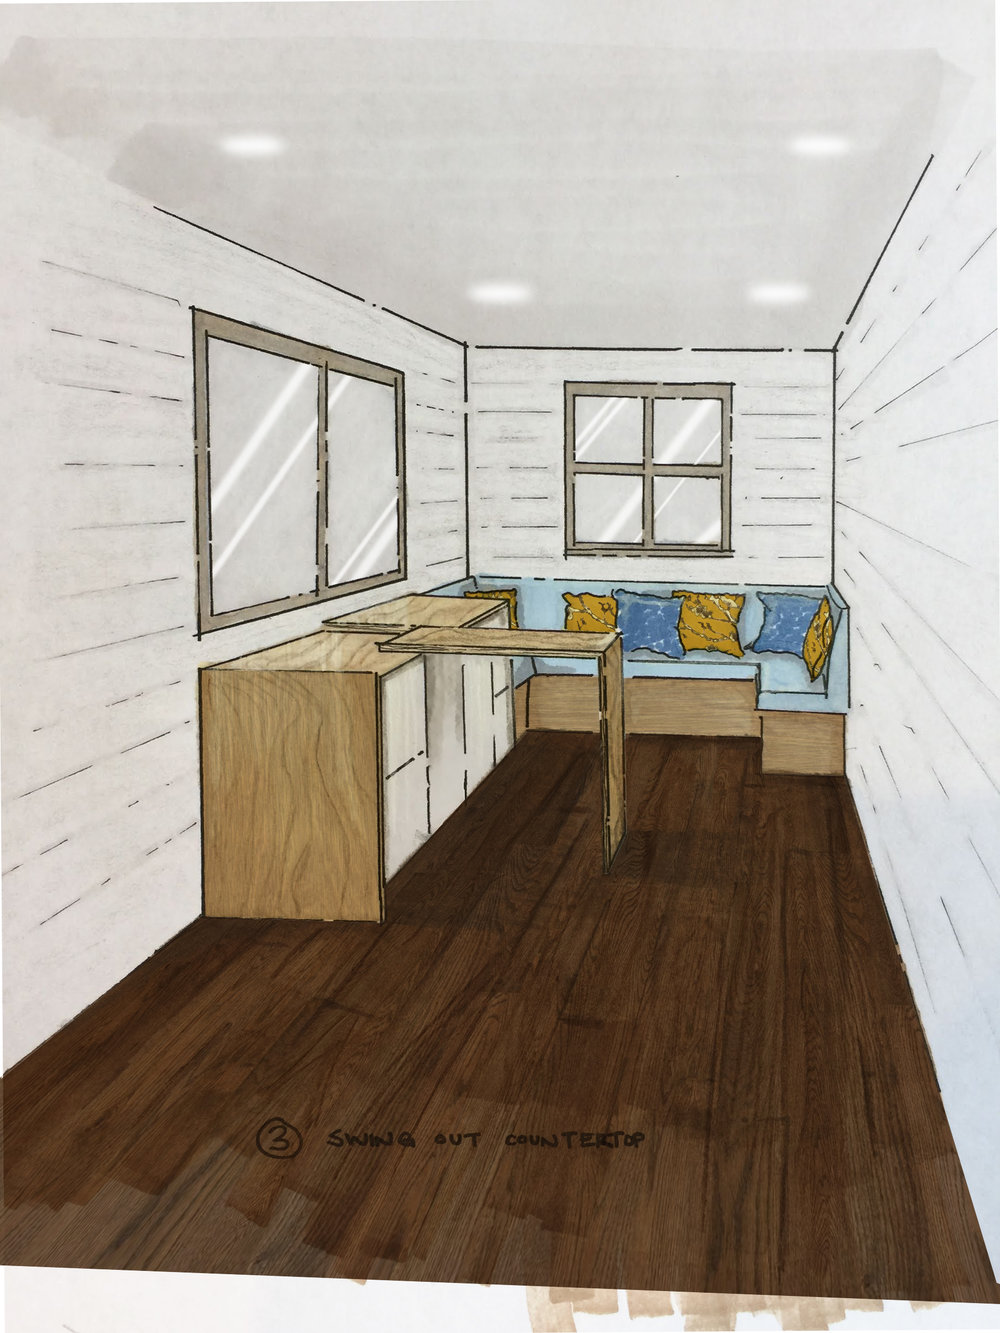 #7 - Counter space in a tiny house is coveted. Why not create convertible counter top space that can be expanded while in use and then stowed away. We've already done this with sink covers, we'd like to try a fold-out design like this too.